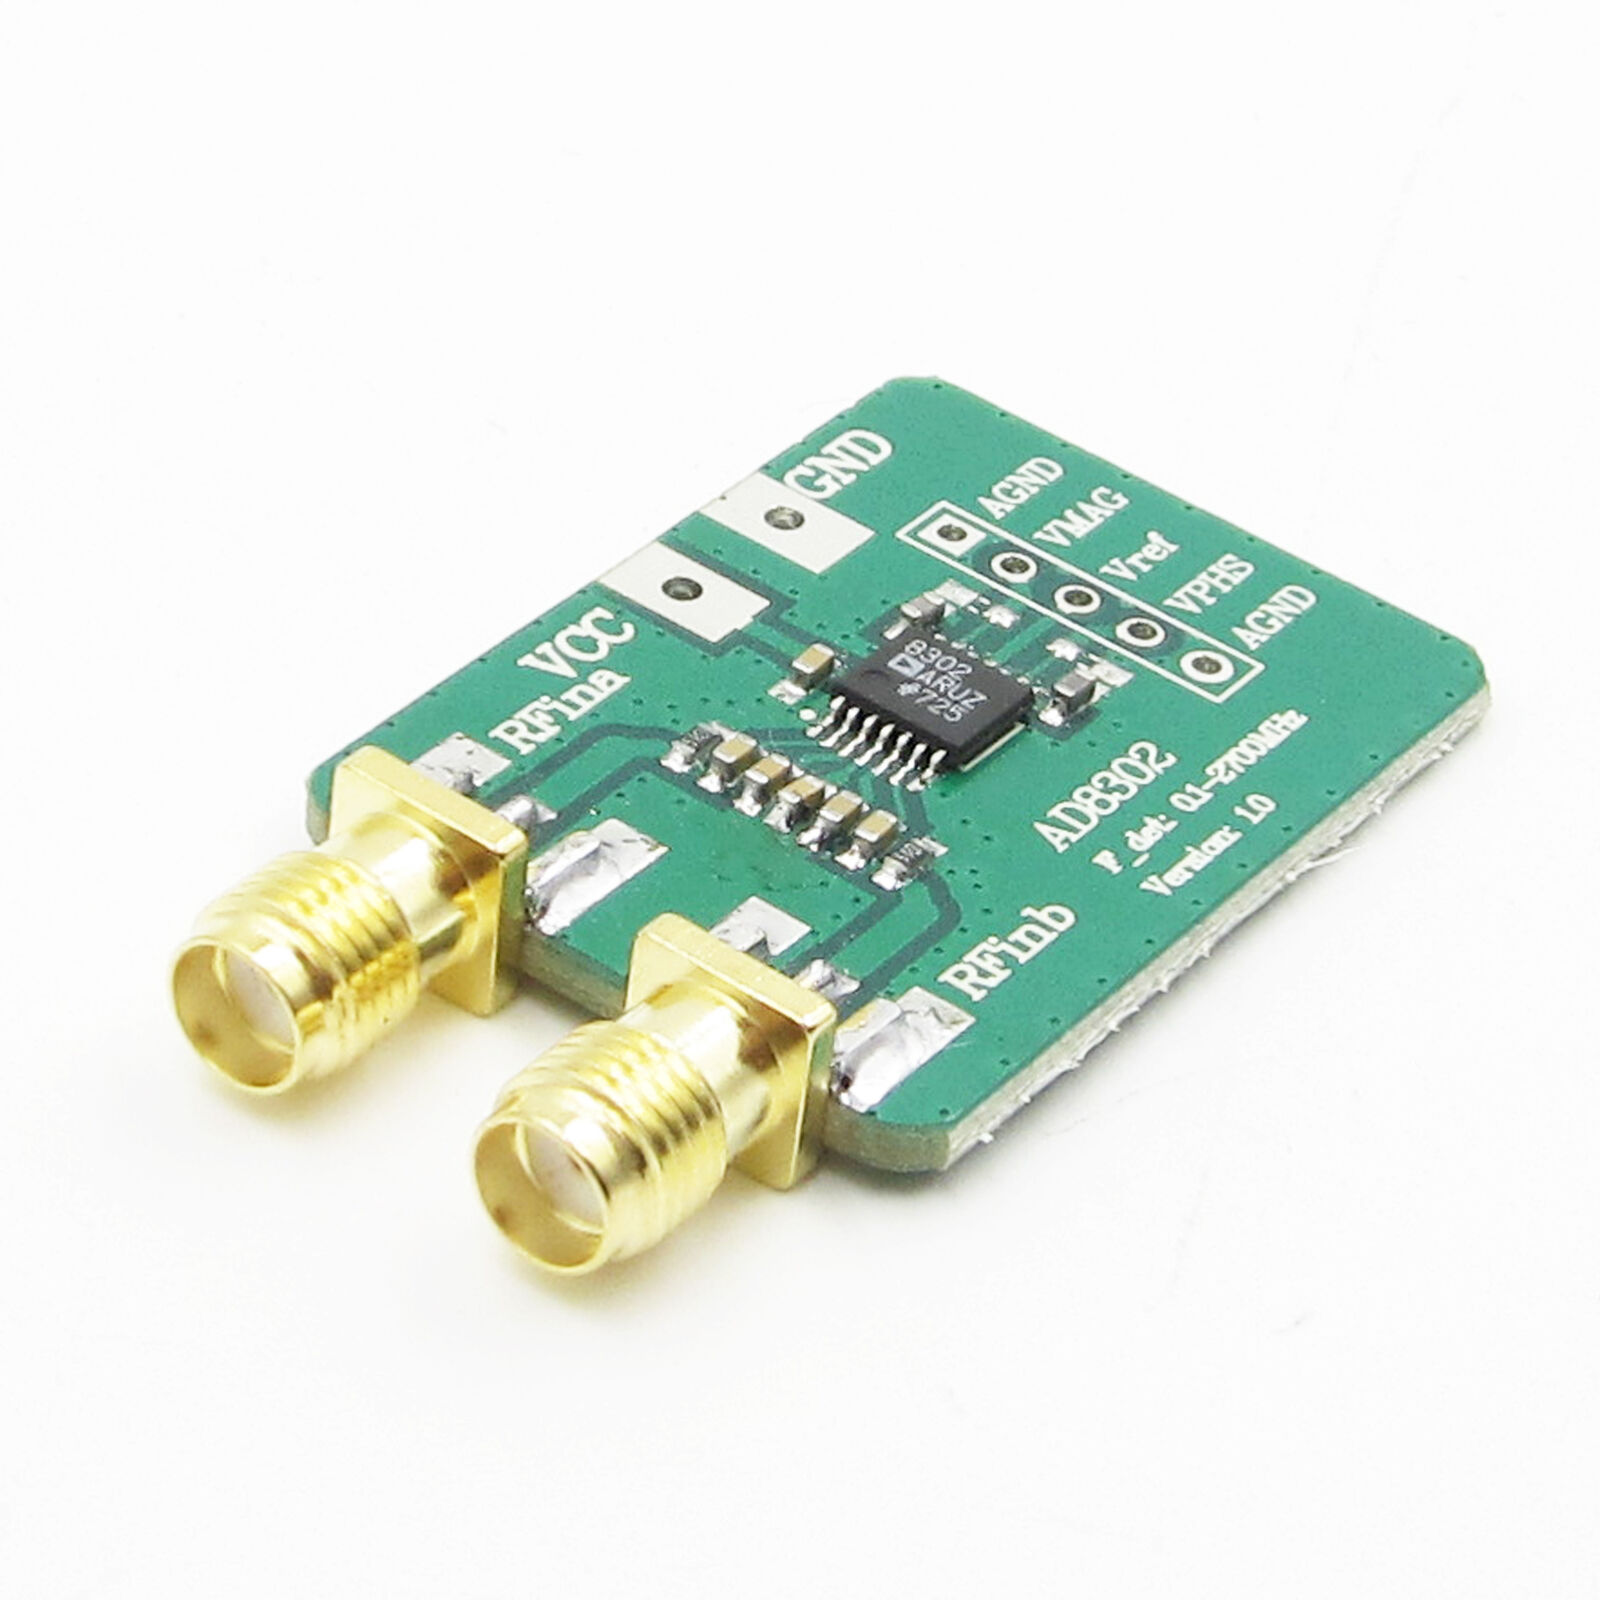 New If 27ghz Phase Detection Arduino Ad8302 Amplitude Rf Side 5x7cm Printed Circuit Pcb Vero Prototyping Track Strip Board Uk 1 Of 4free Shipping